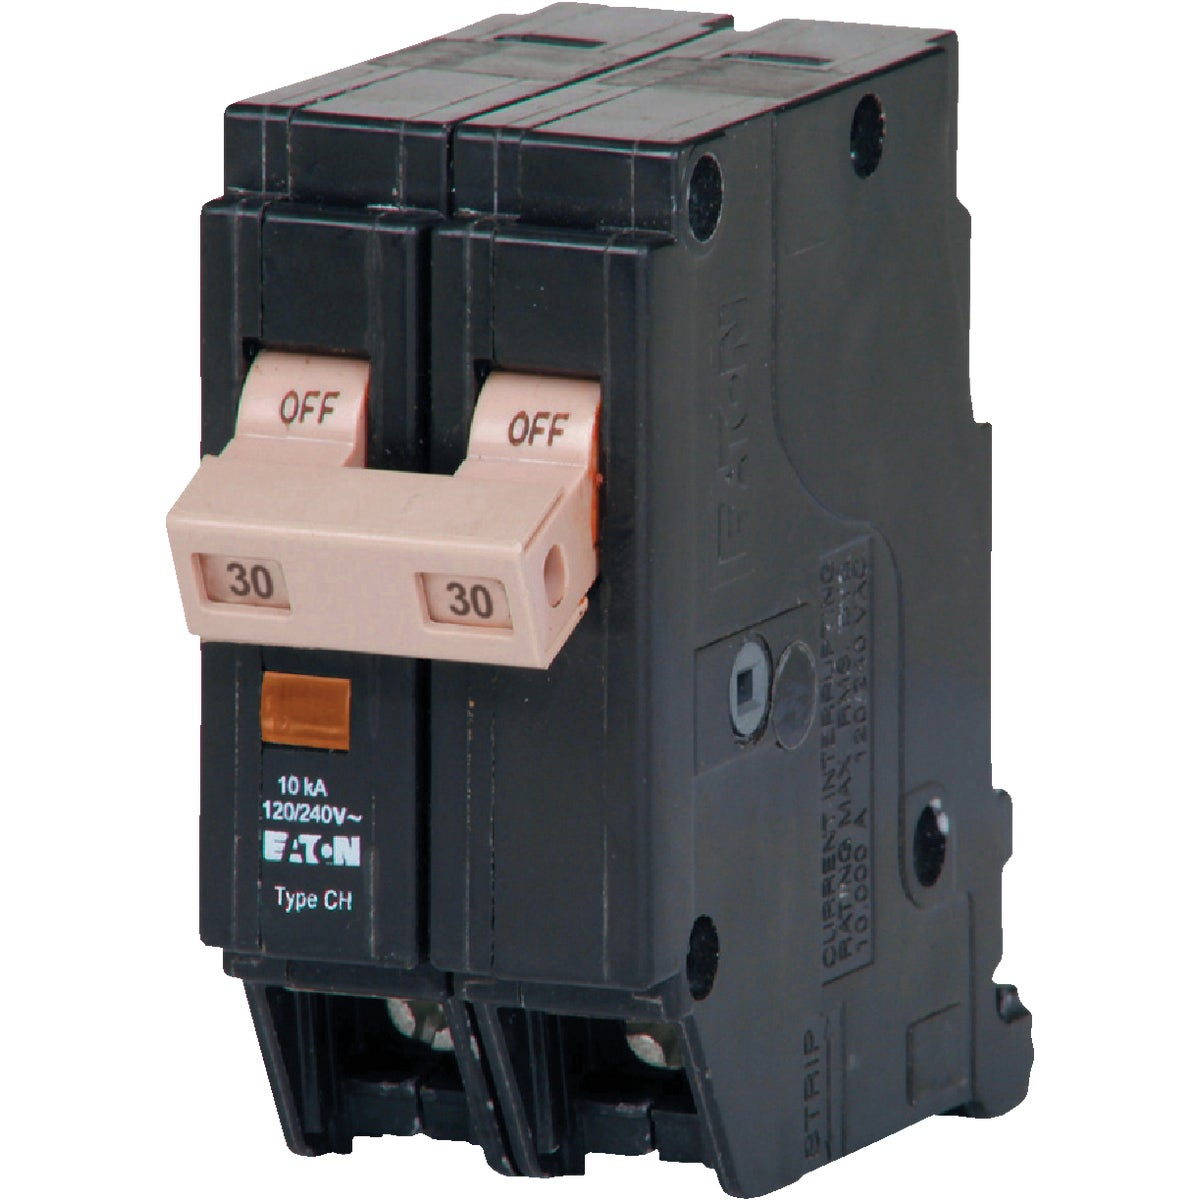 30A 2P CIRCUIT BREAKER - CH230 by Eaton Corporation